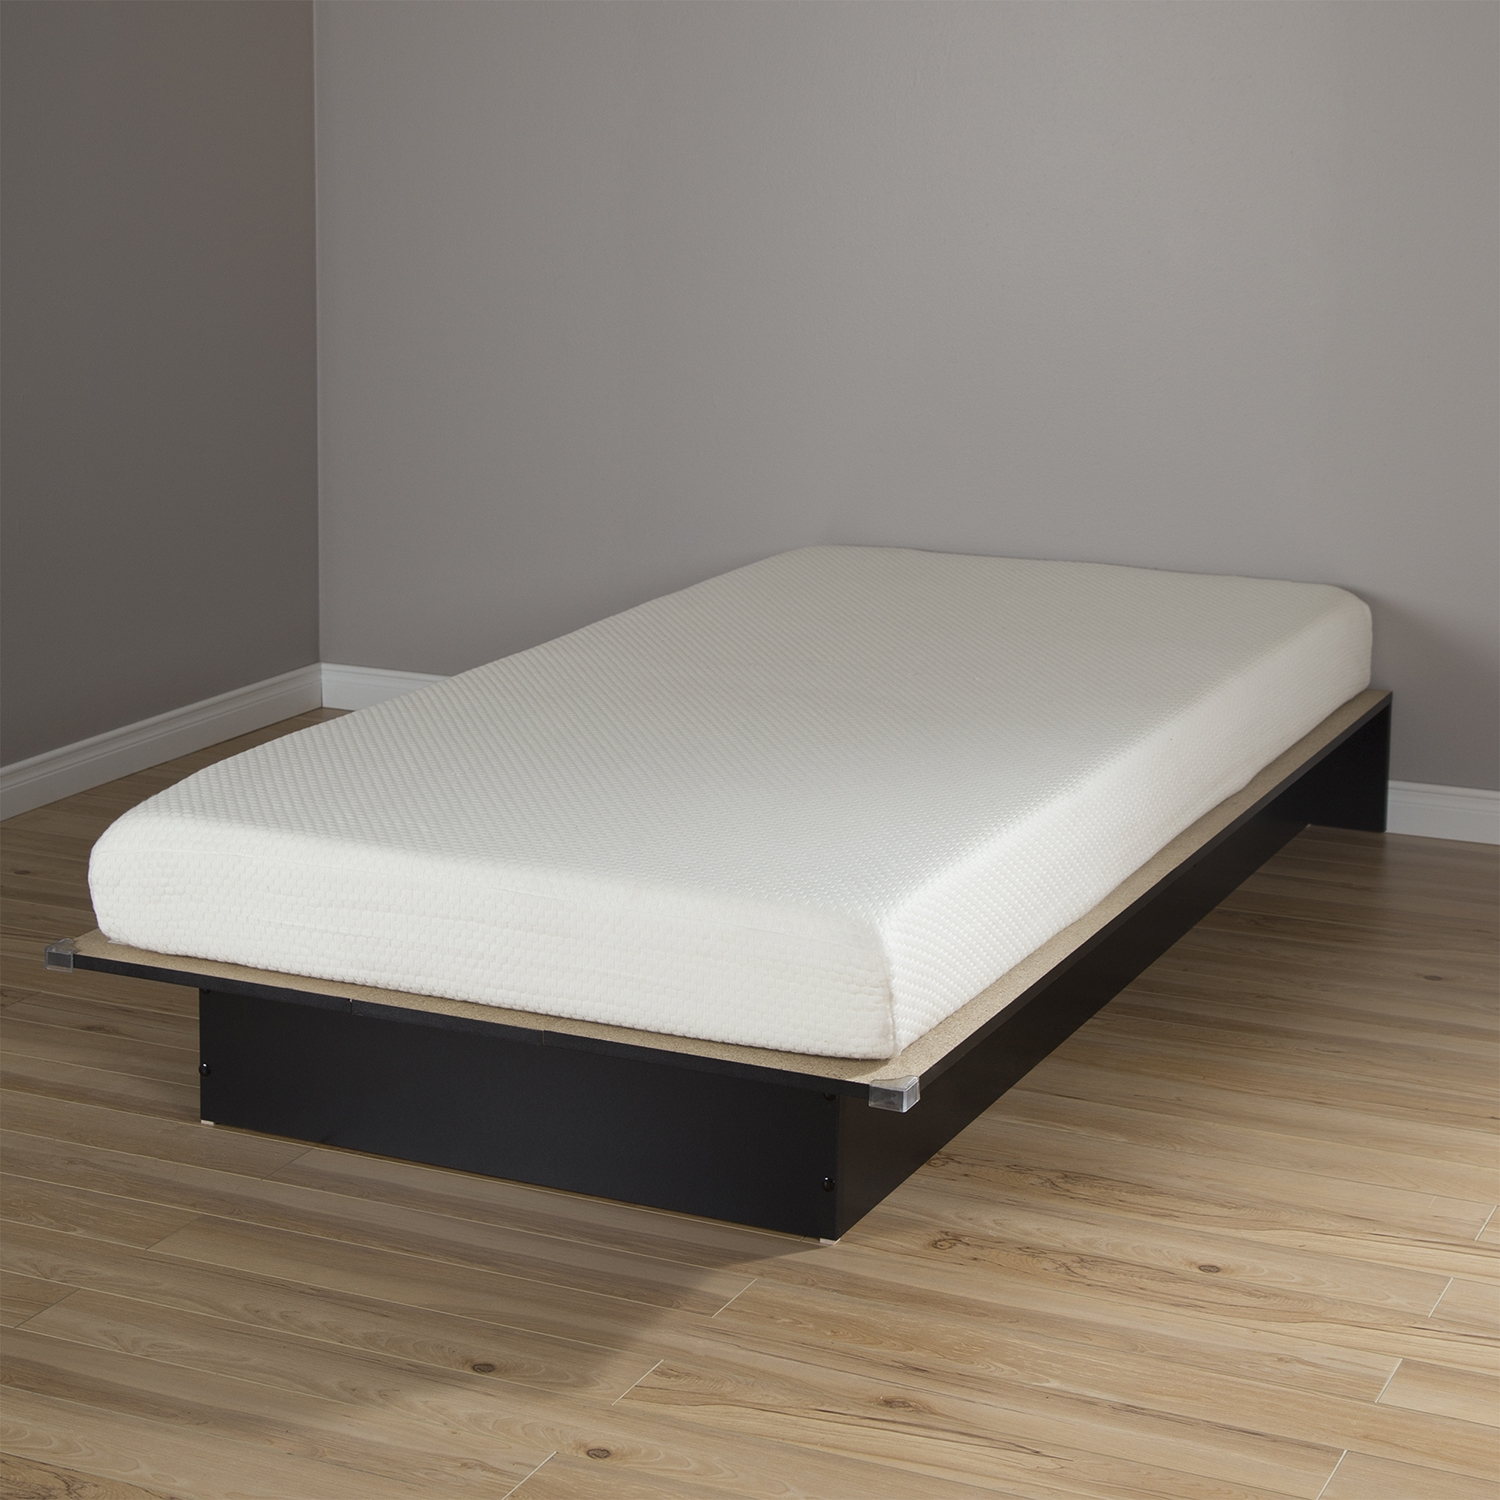 "Libra Twin Platform Bed with 6"" Somea Mattress - Pure Black - SS-100026"